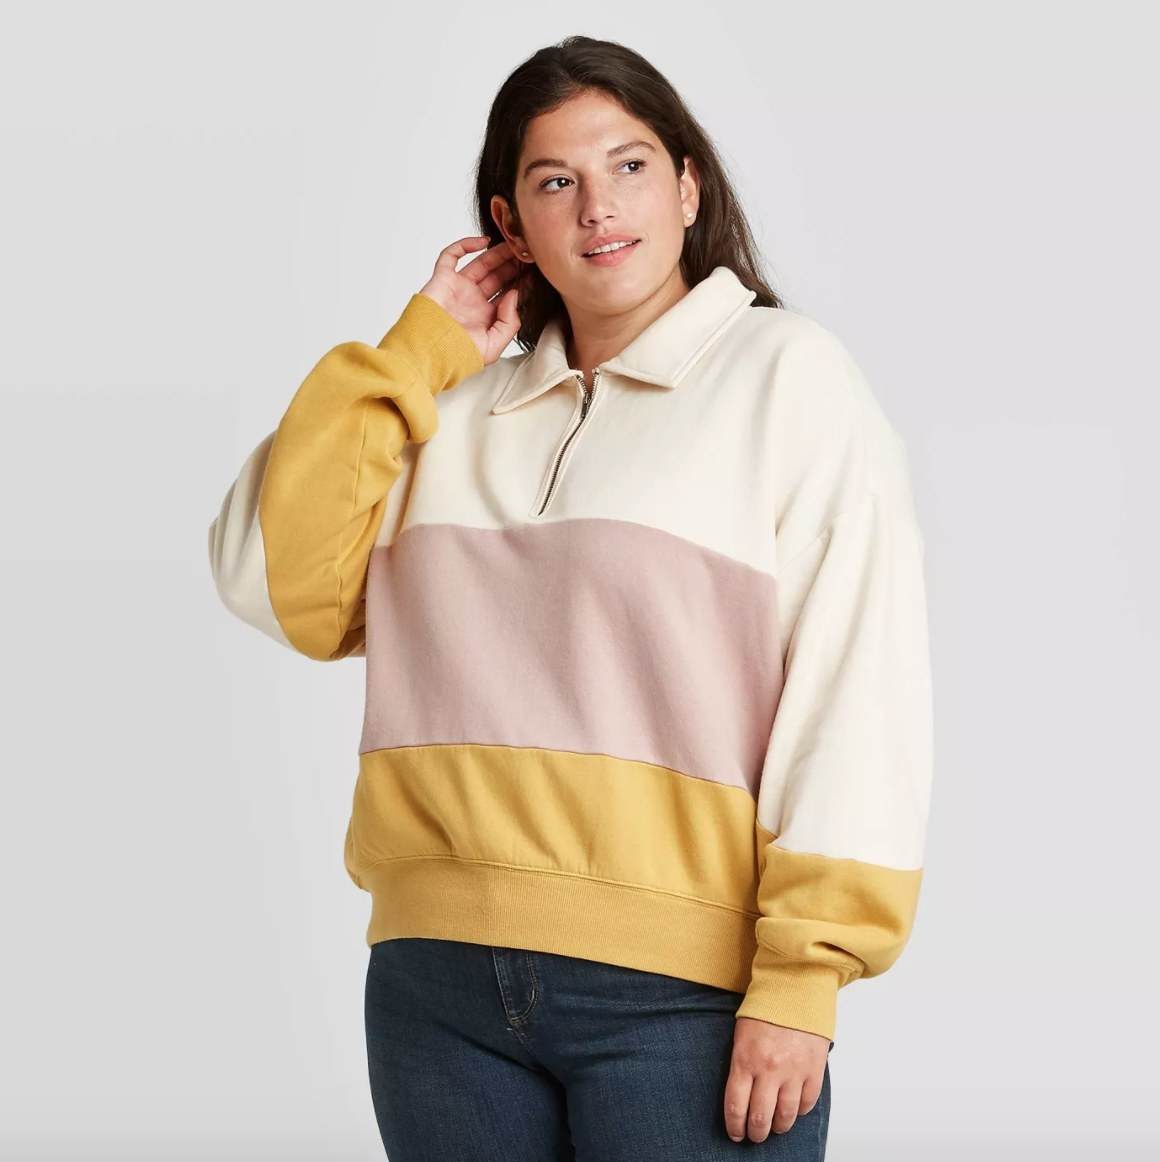 The sweatshirt in the color yellow/cream